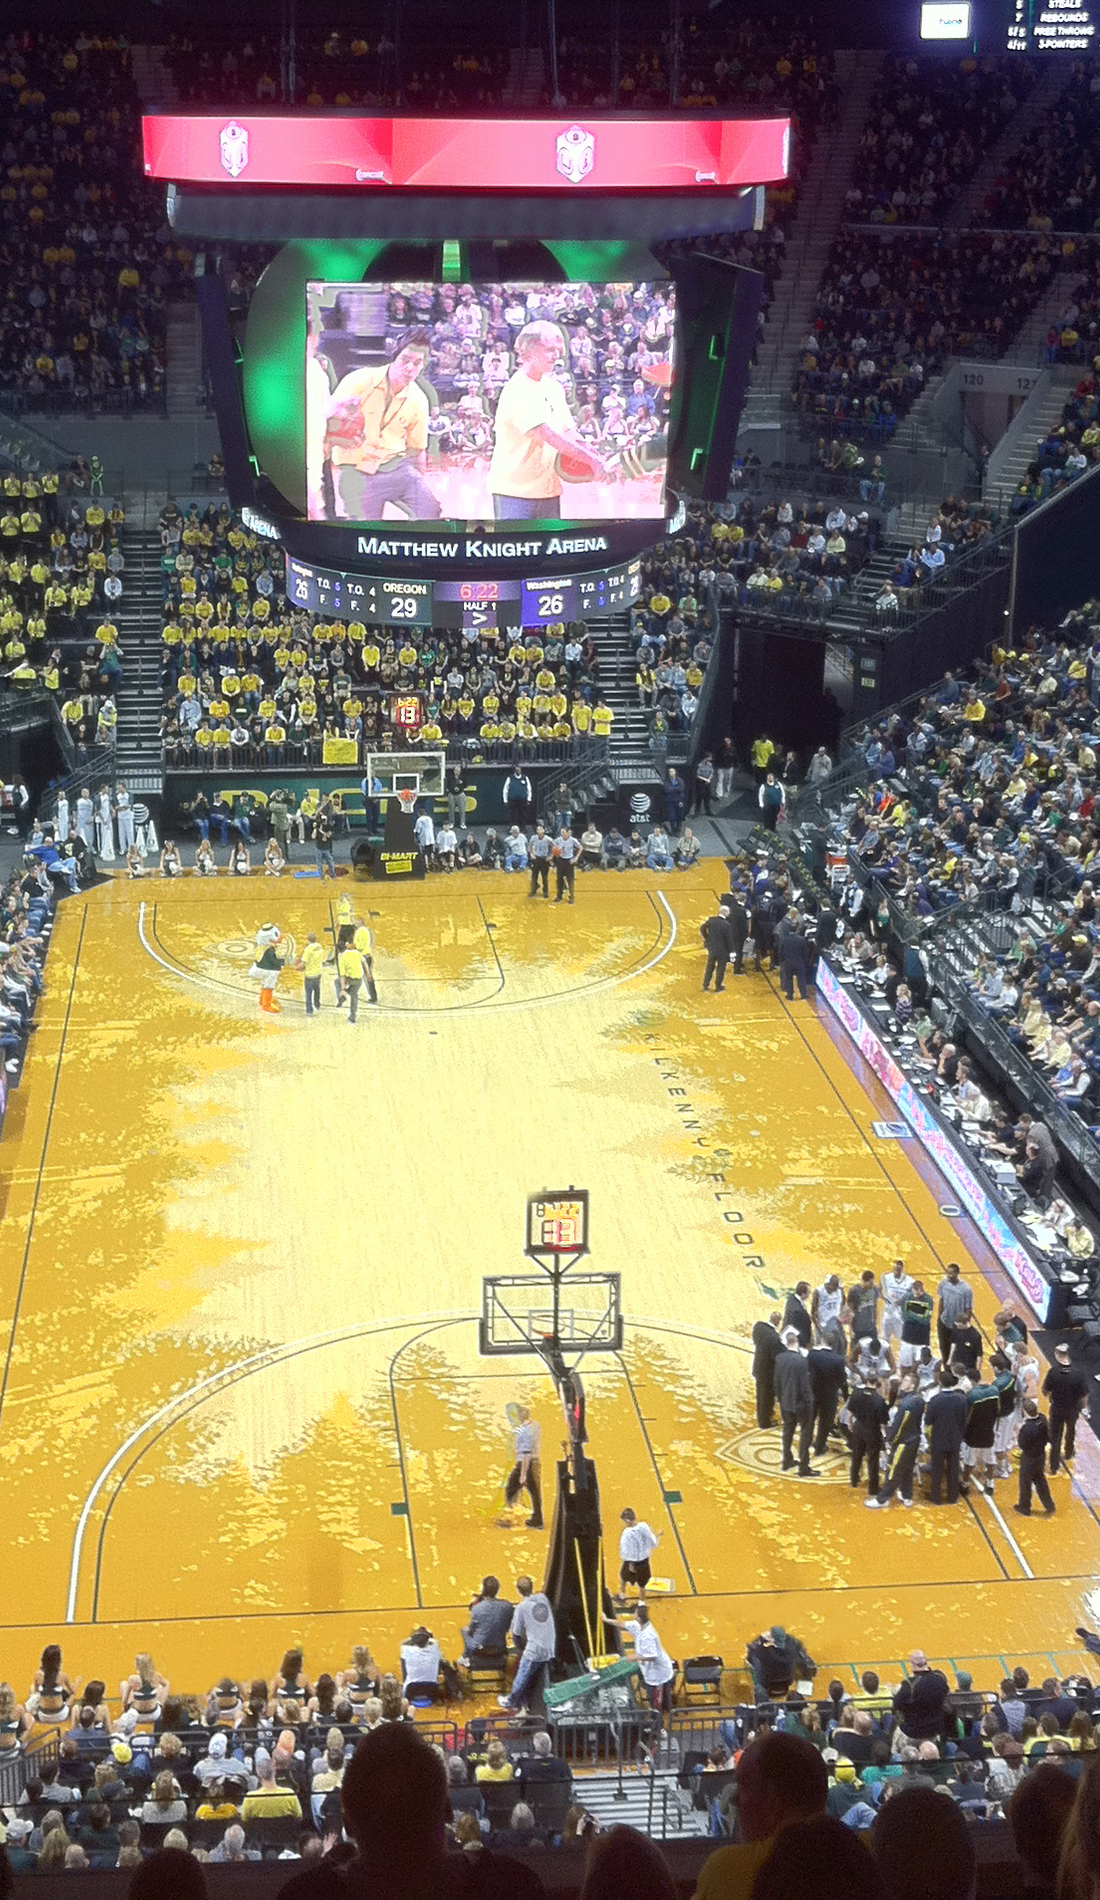 A Oregon Ducks Basketball live event